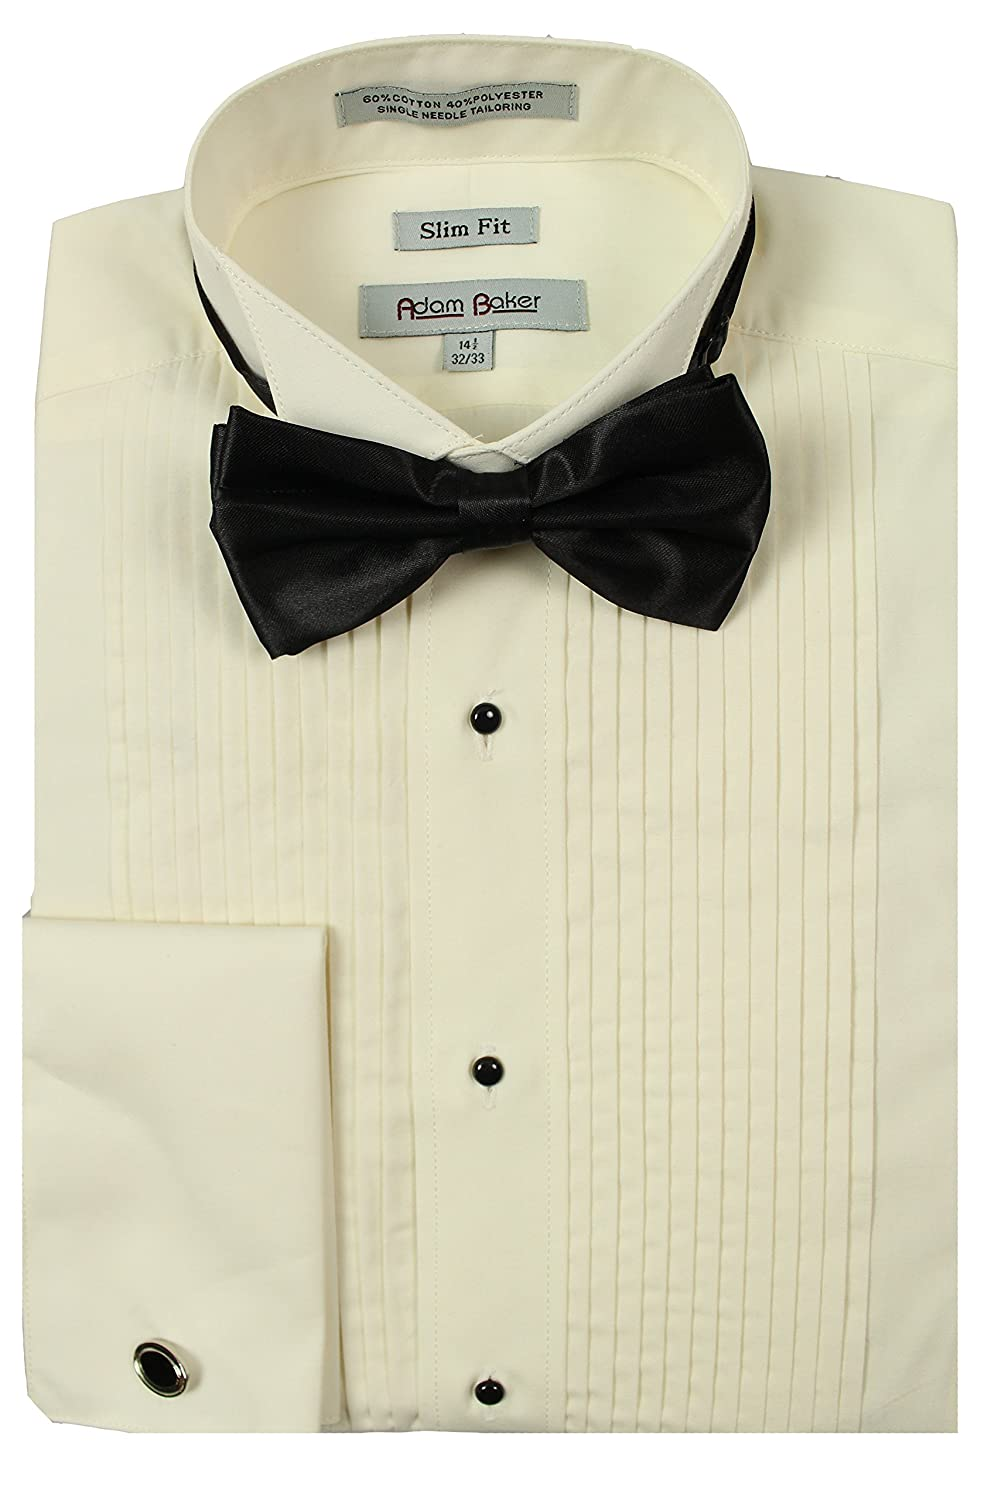 Slim Fit Ten Pleat Wing Collar Formal Tuxedo Shirt Bcd Tofu House